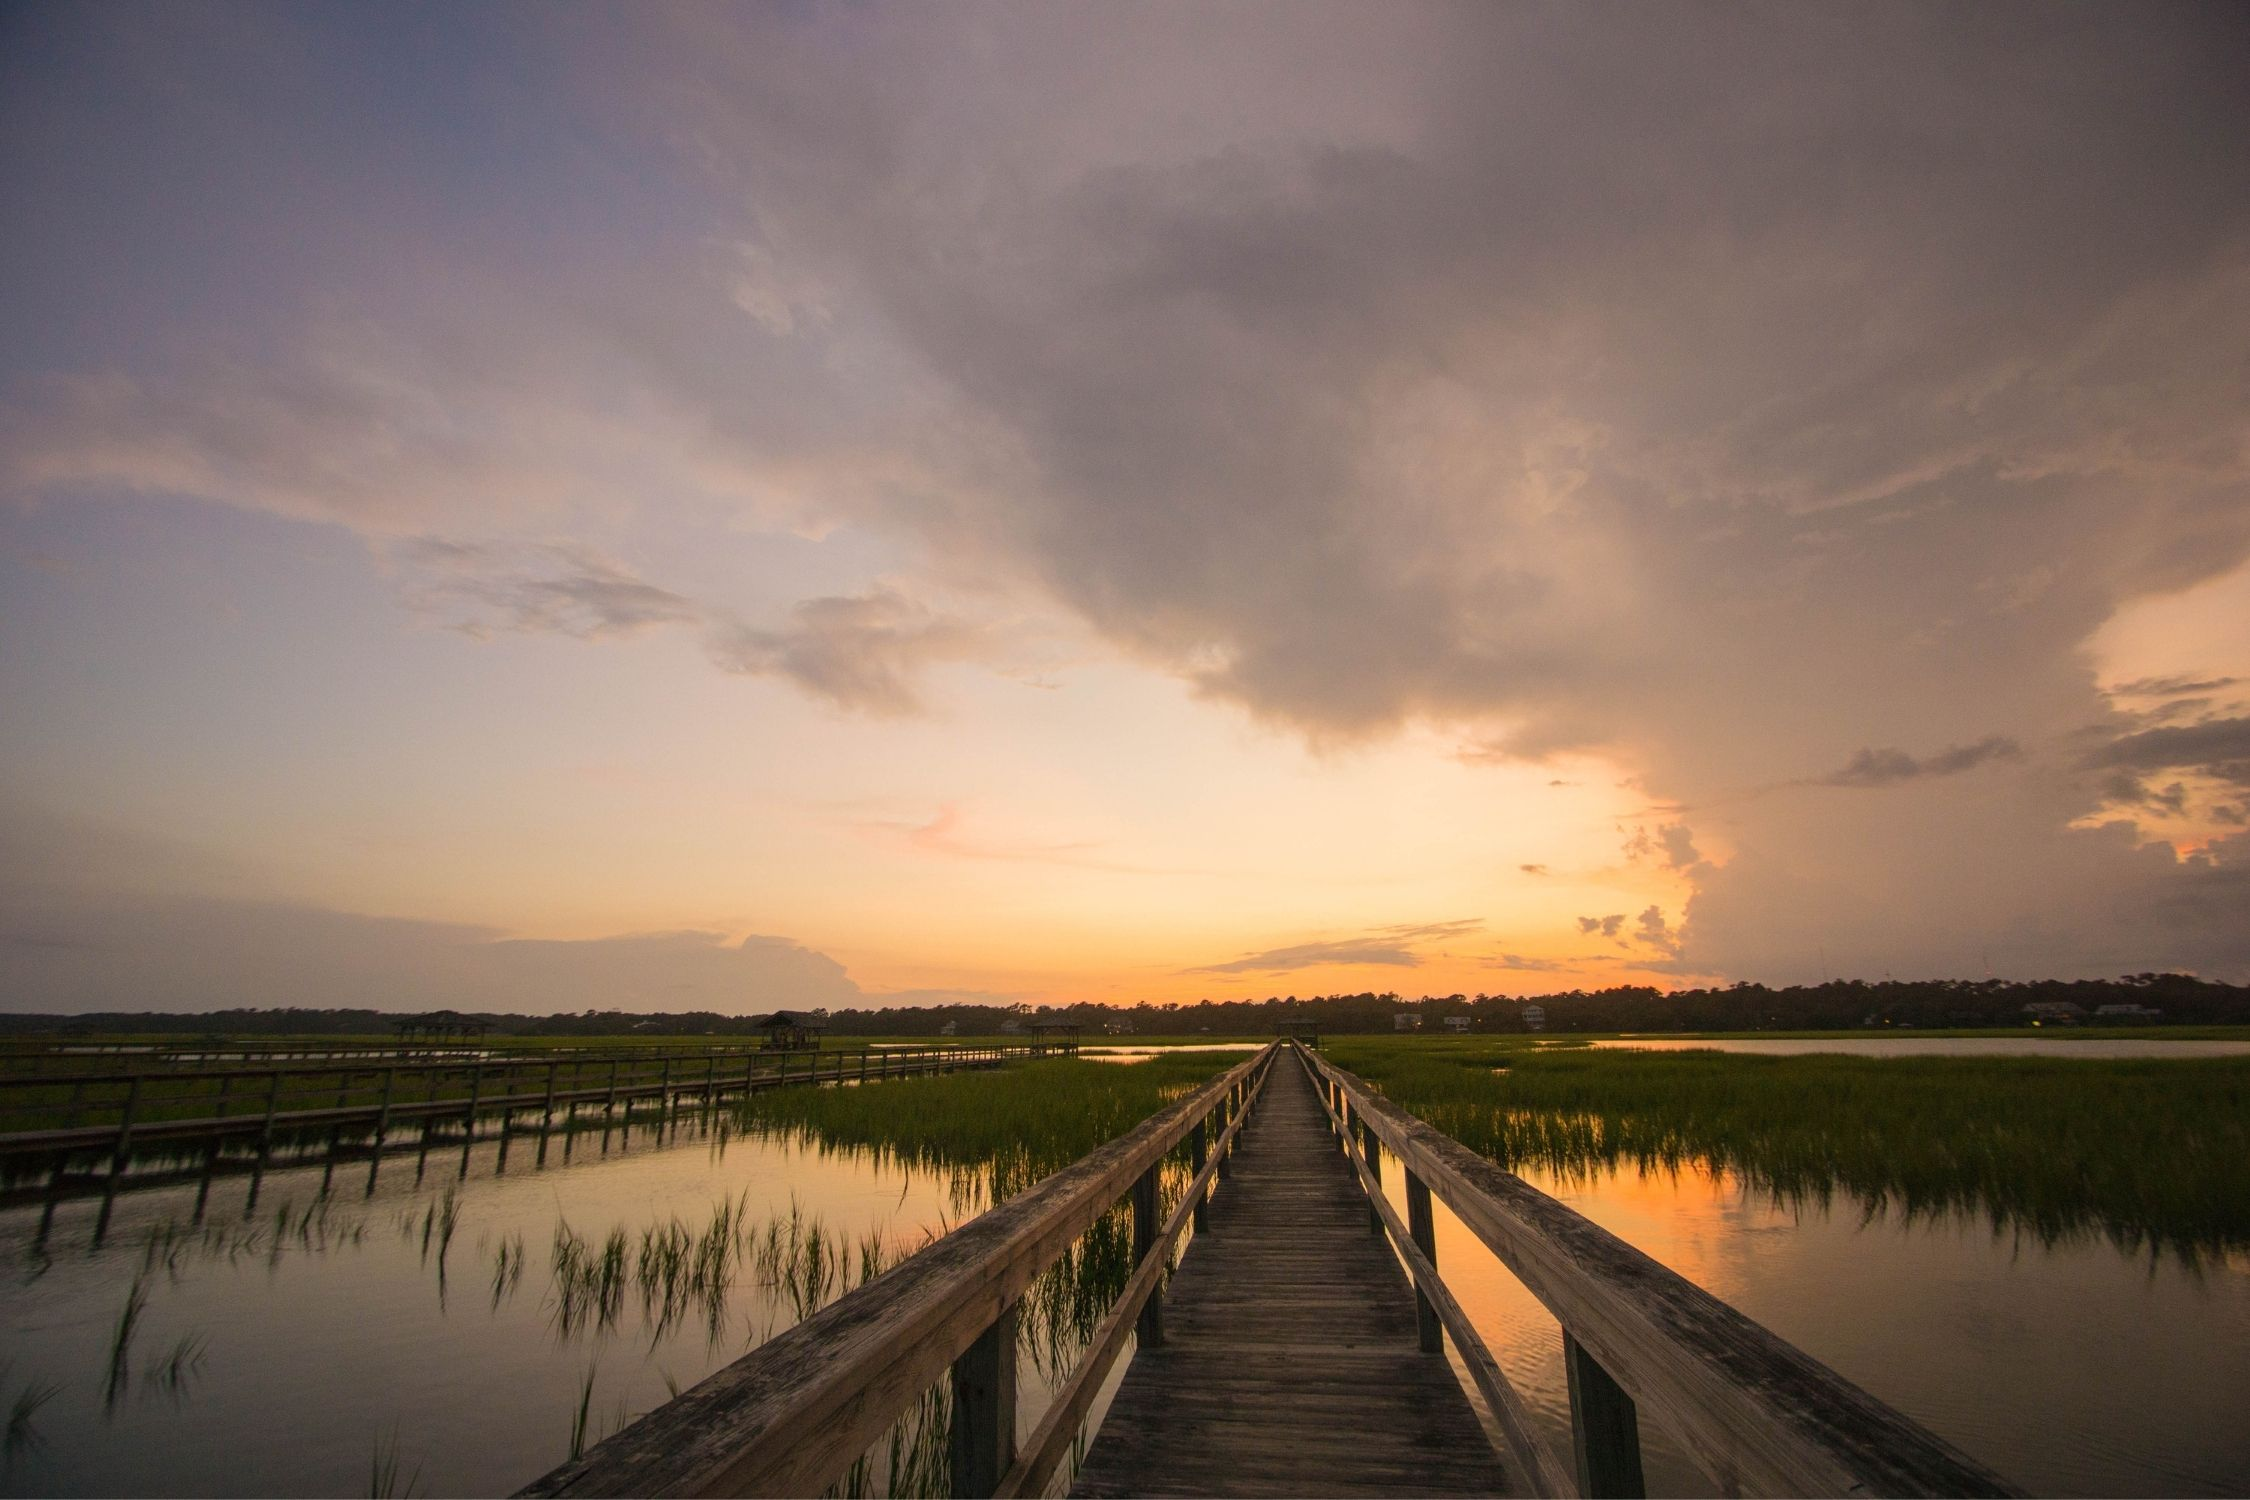 Sunset over the dock in Pawleys Island